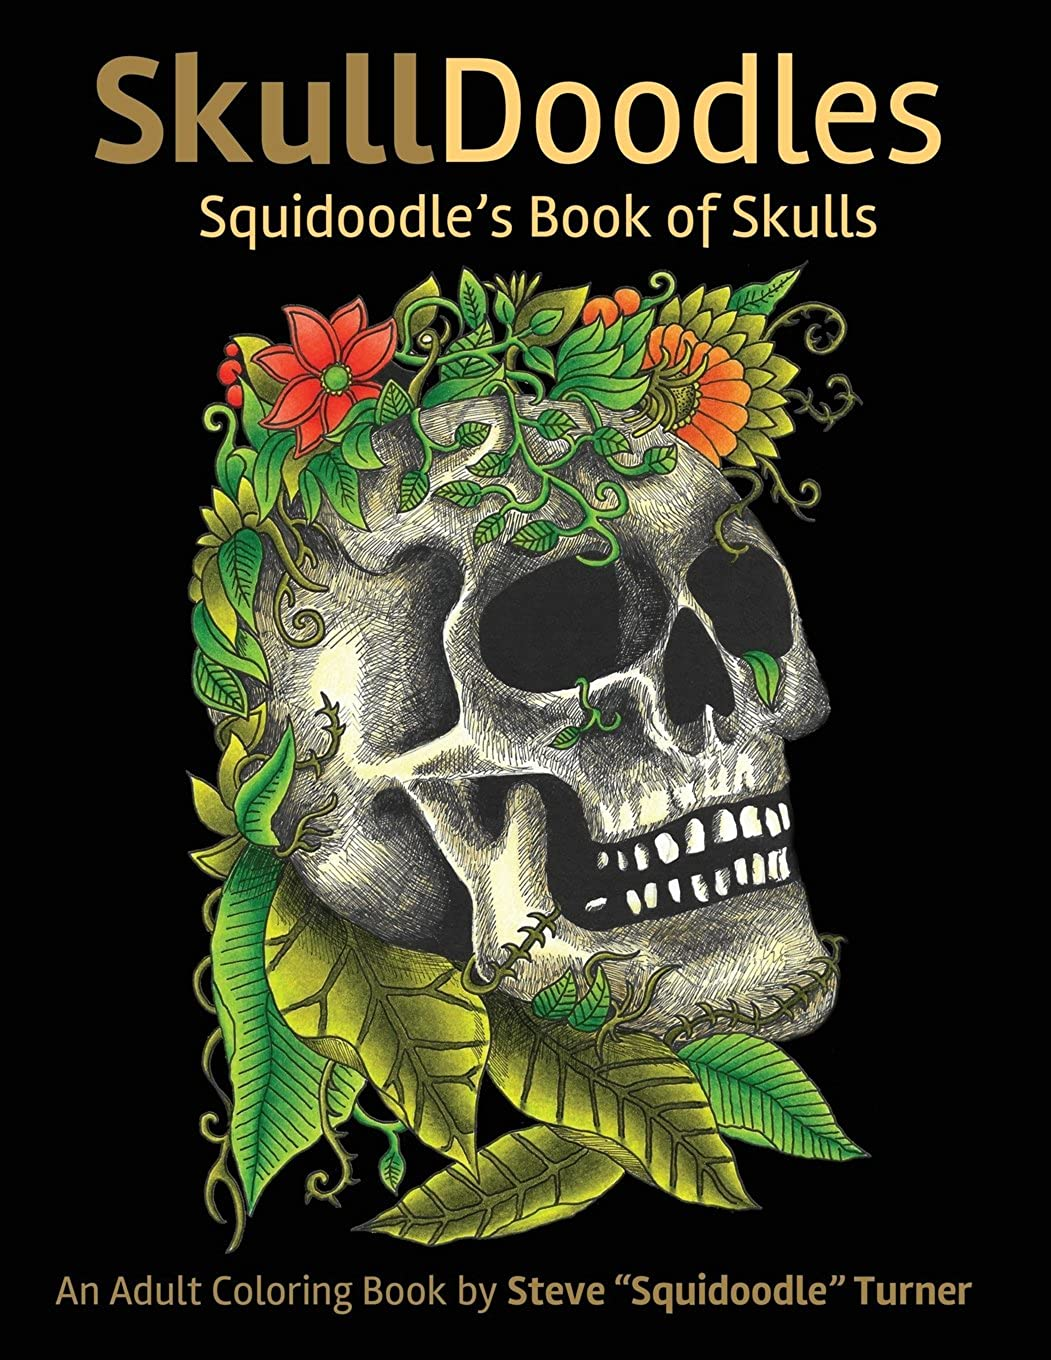 邪魔する人類天使Skulldoodles - Squidoodle's Book of Skulls: An Adult Coloring Book Of Unique Hand Drawn Skull Illustrations